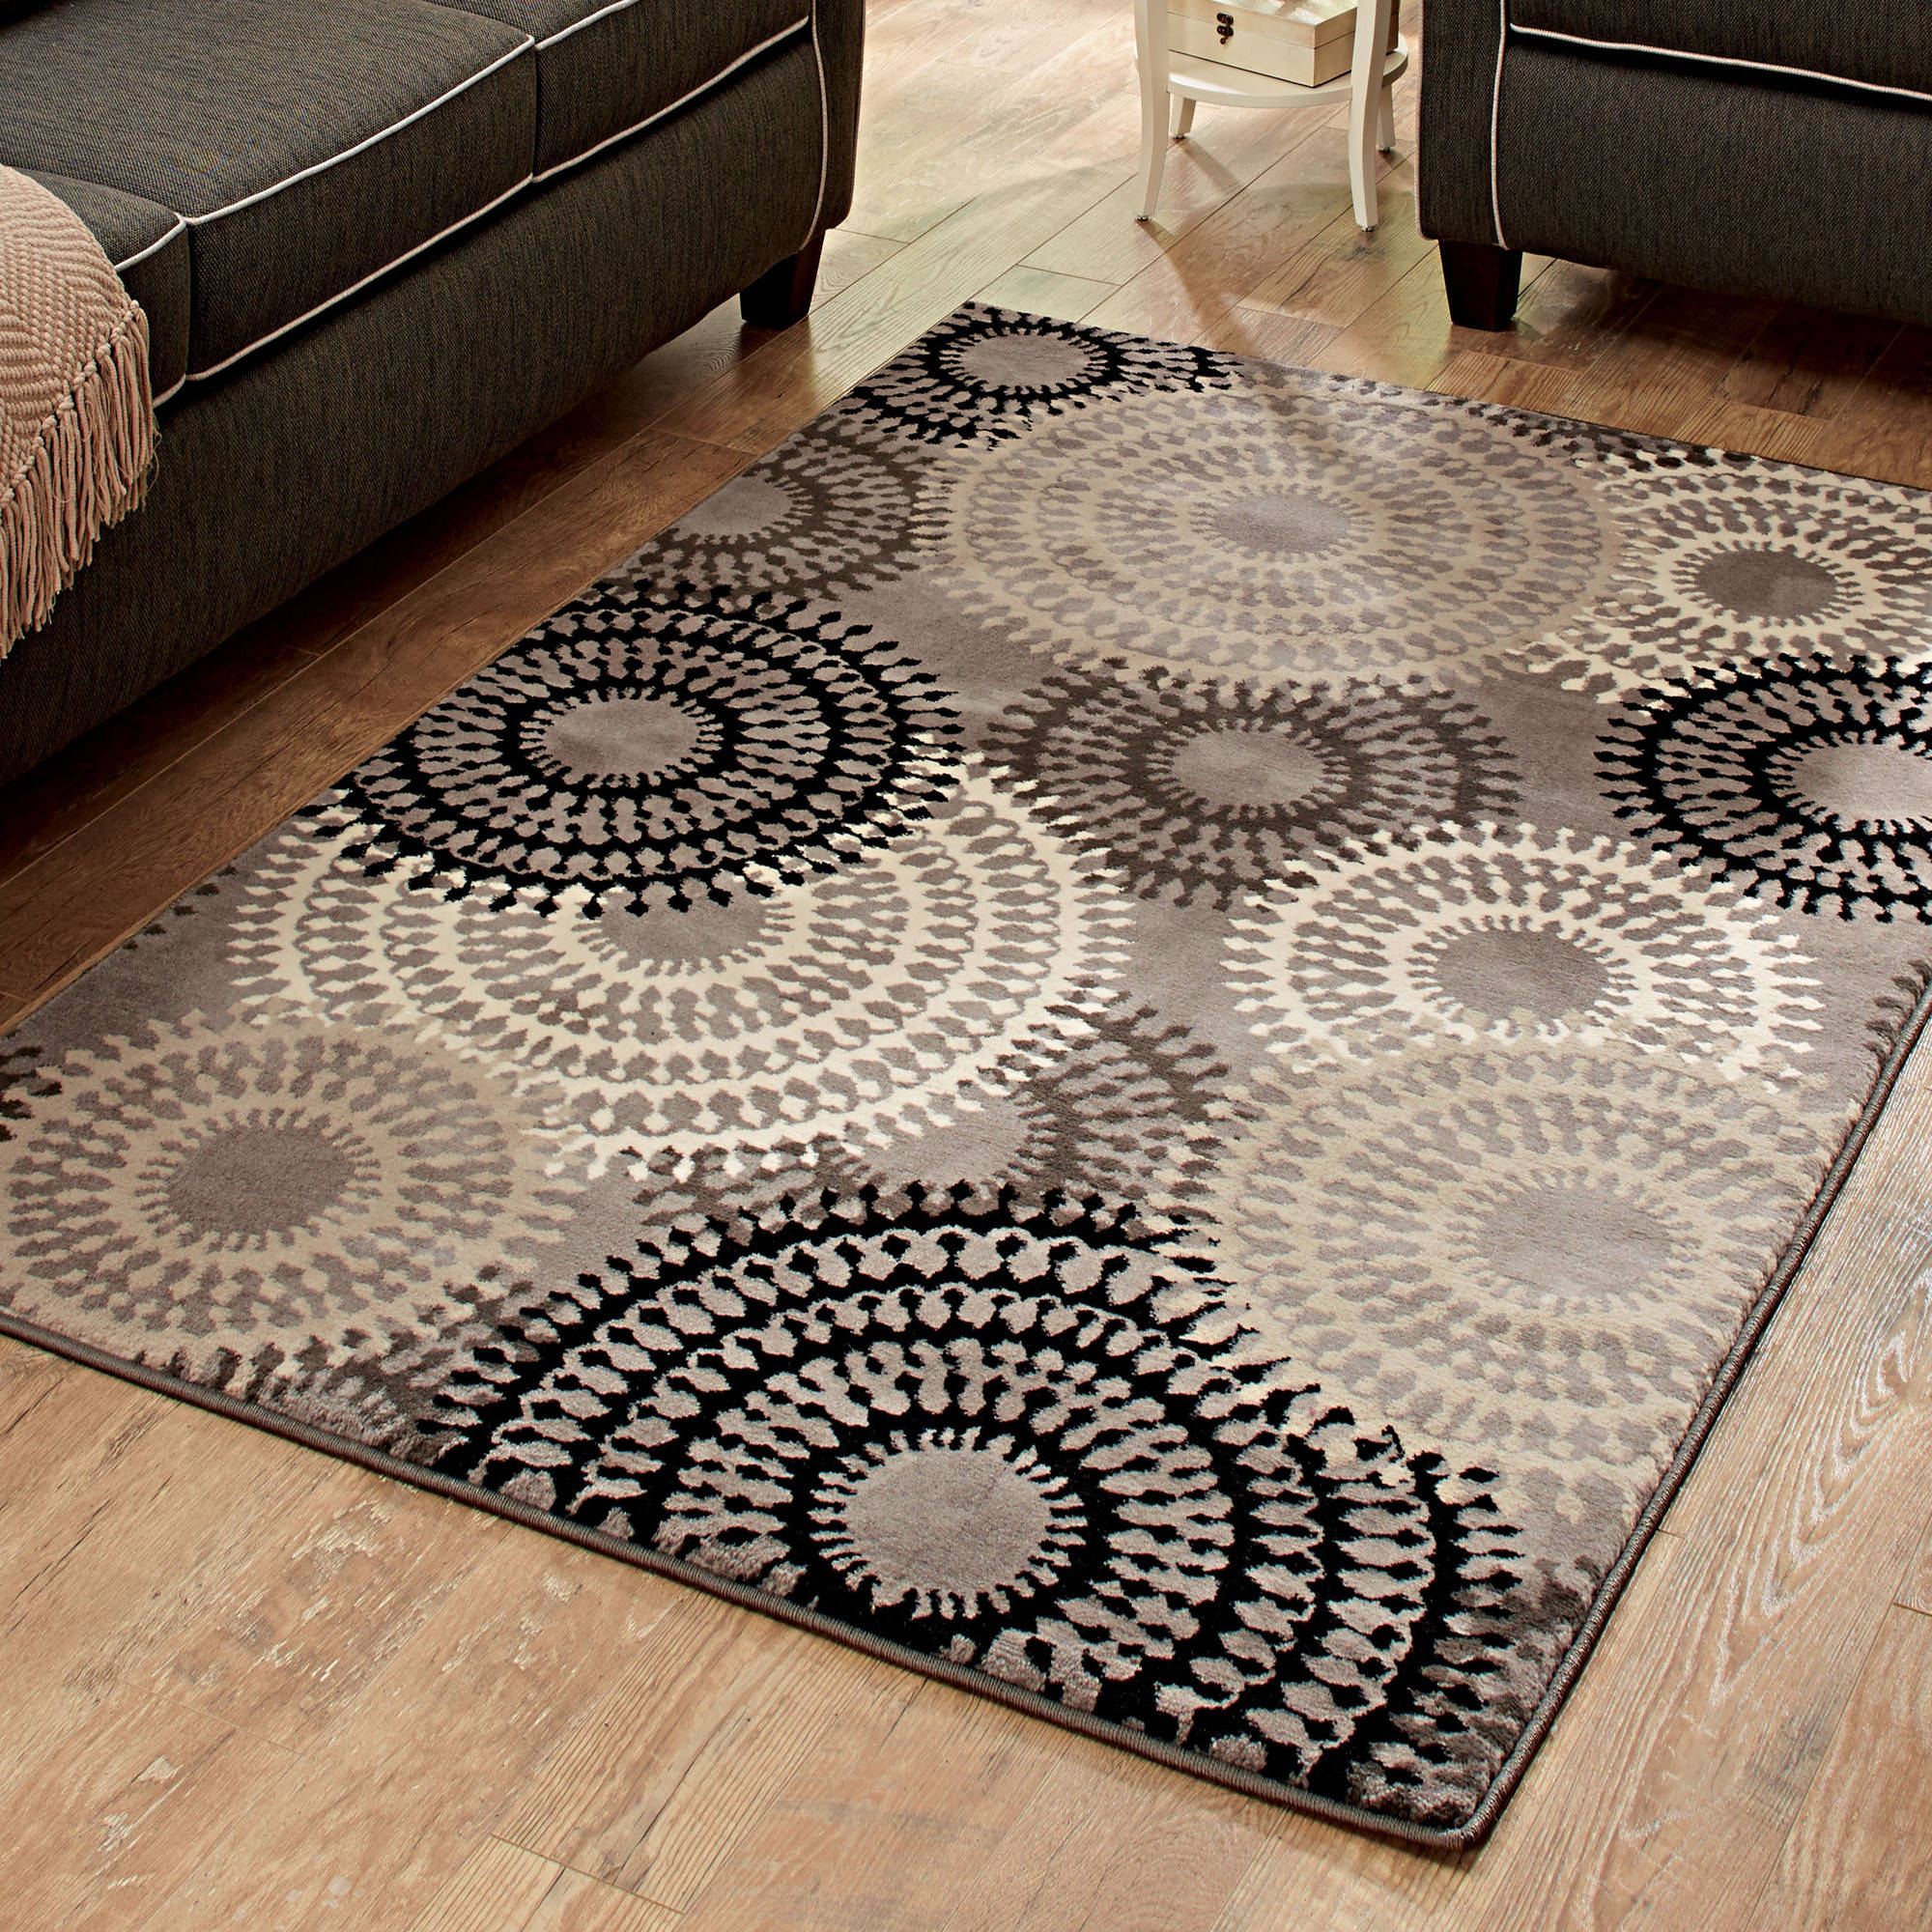 brown area rug with circles better homes and gardens taupe ornate circles area rug or runner ICPVPCM